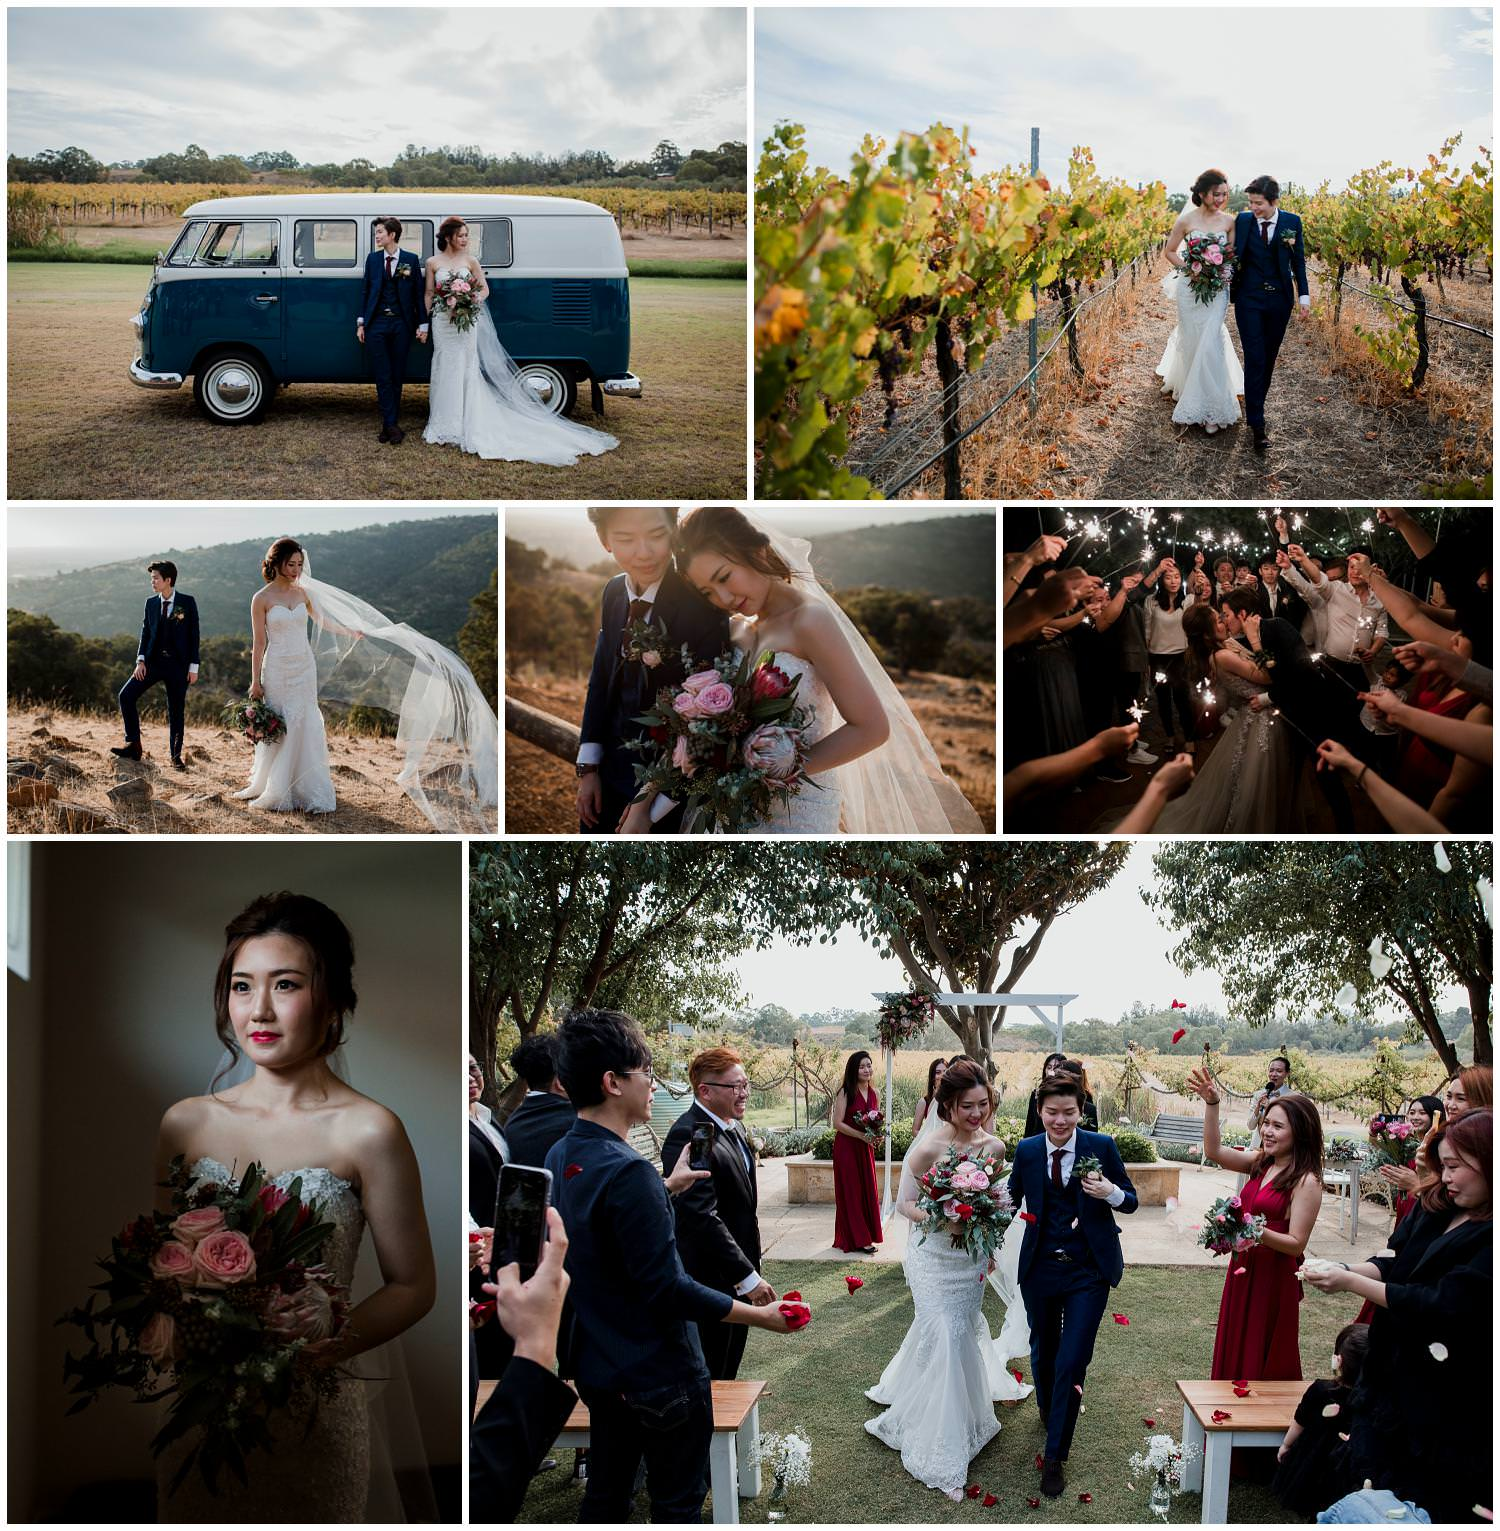 Eve + Shine - Barret Lane Wedding